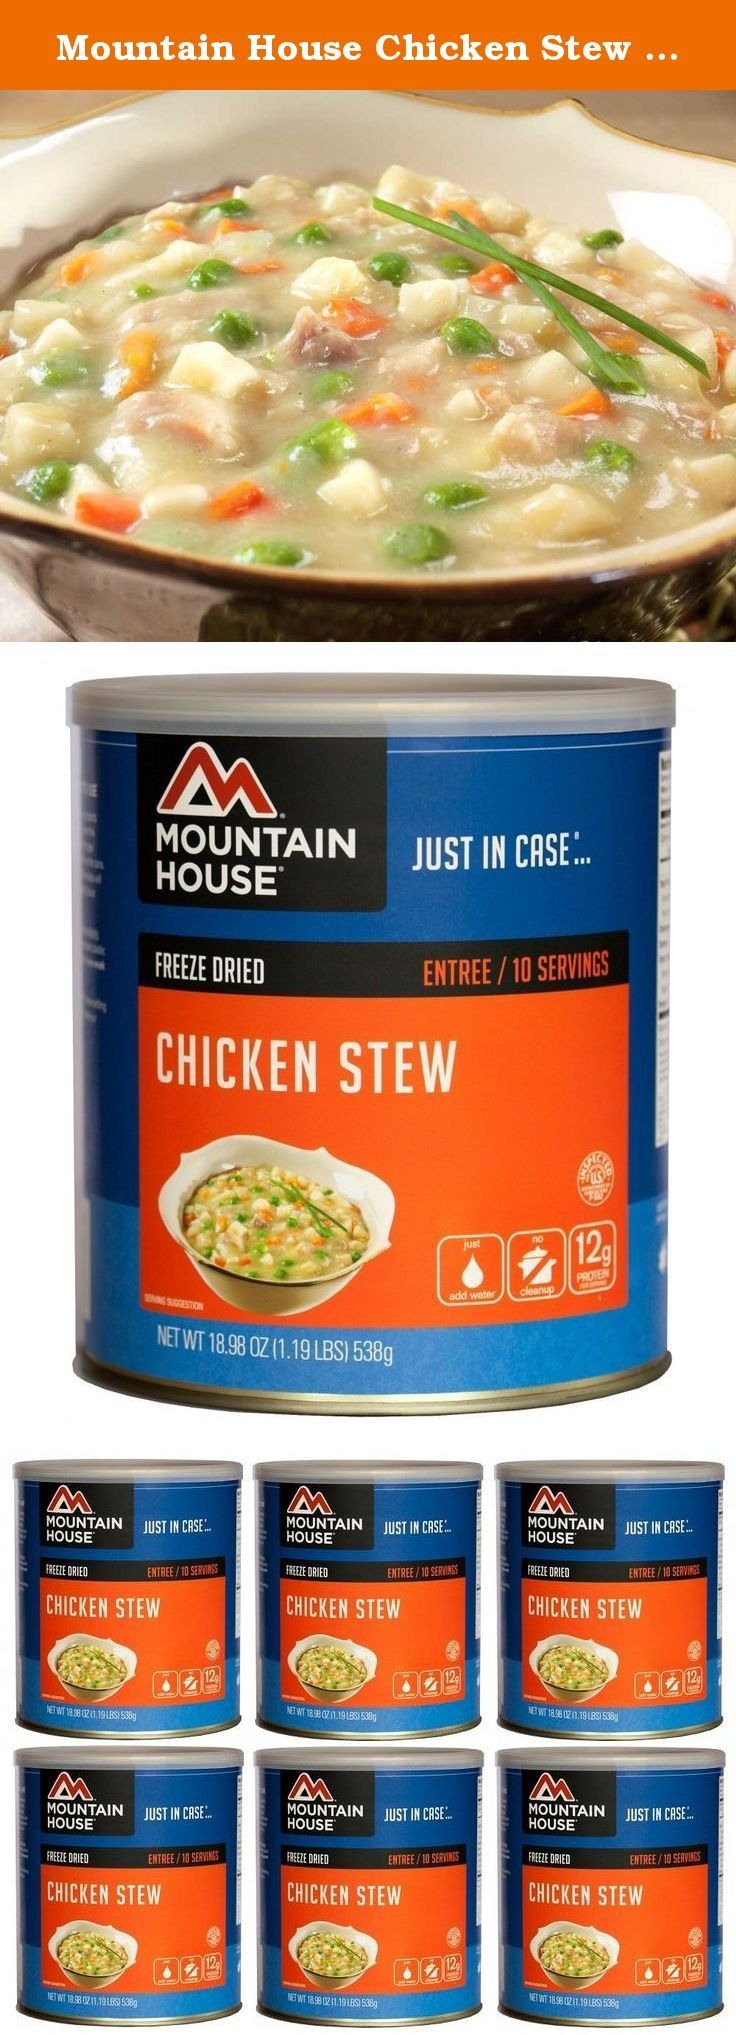 Mountain House Chicken Stew 10 Can Freeze Dried Food 6